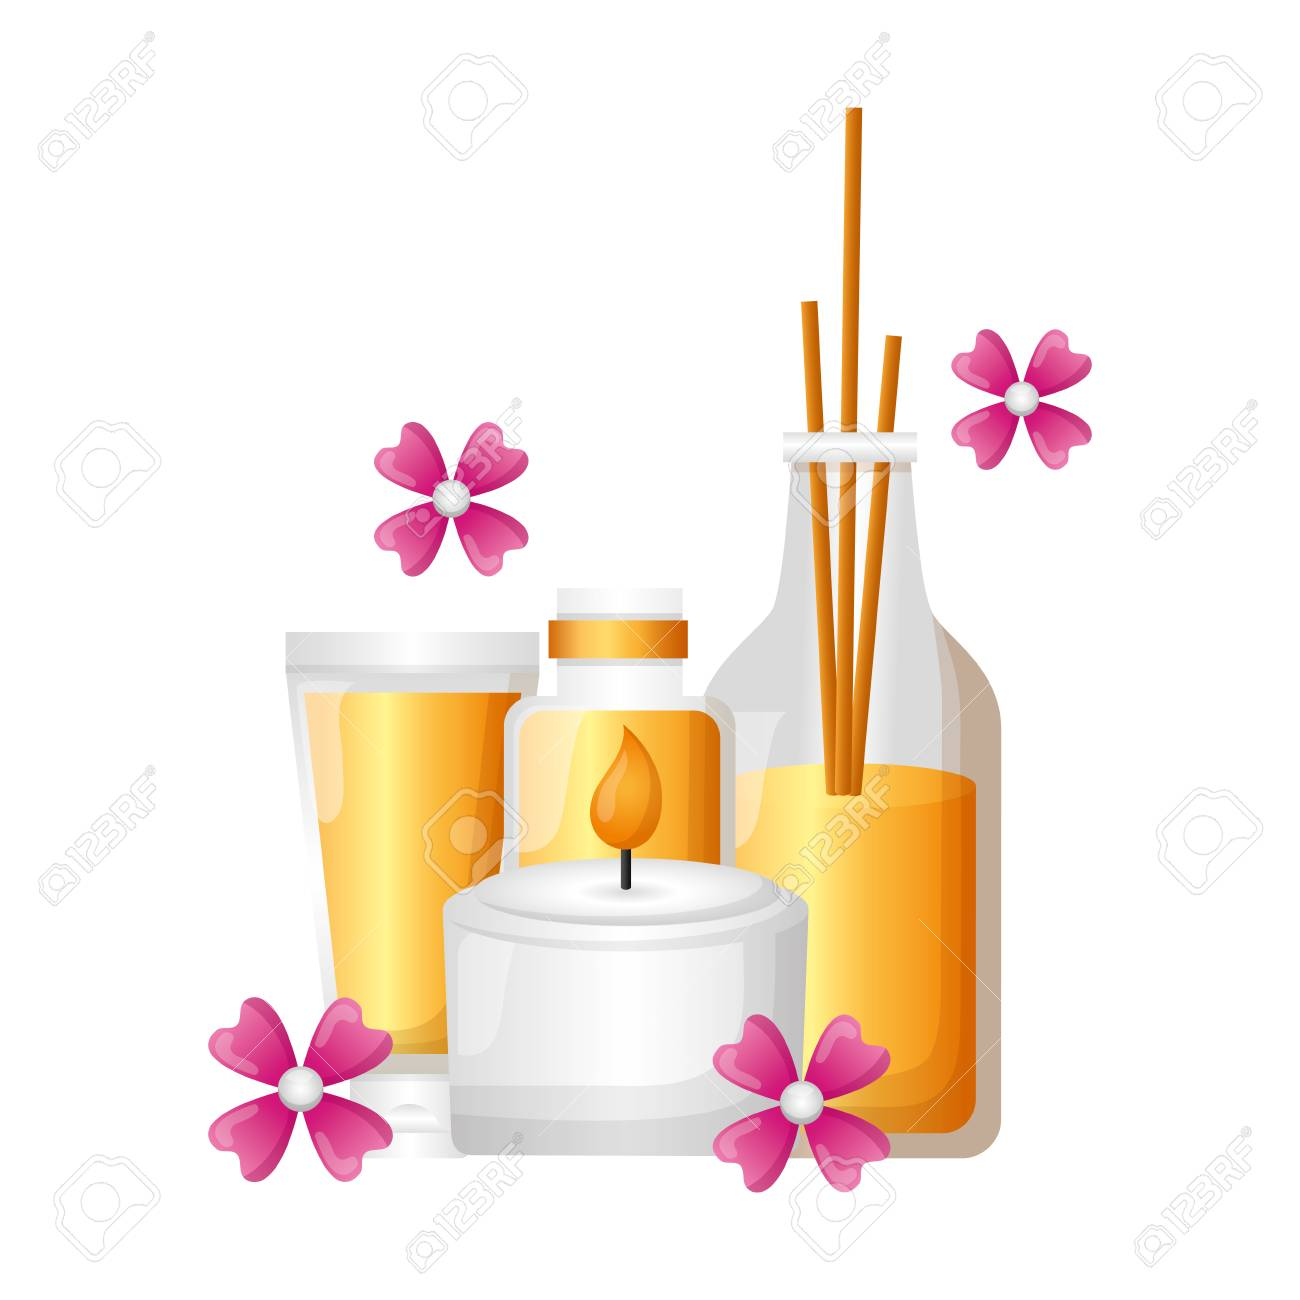 aromatherapy sticks candle lotion flower spa therapy vector illustration - 122646322